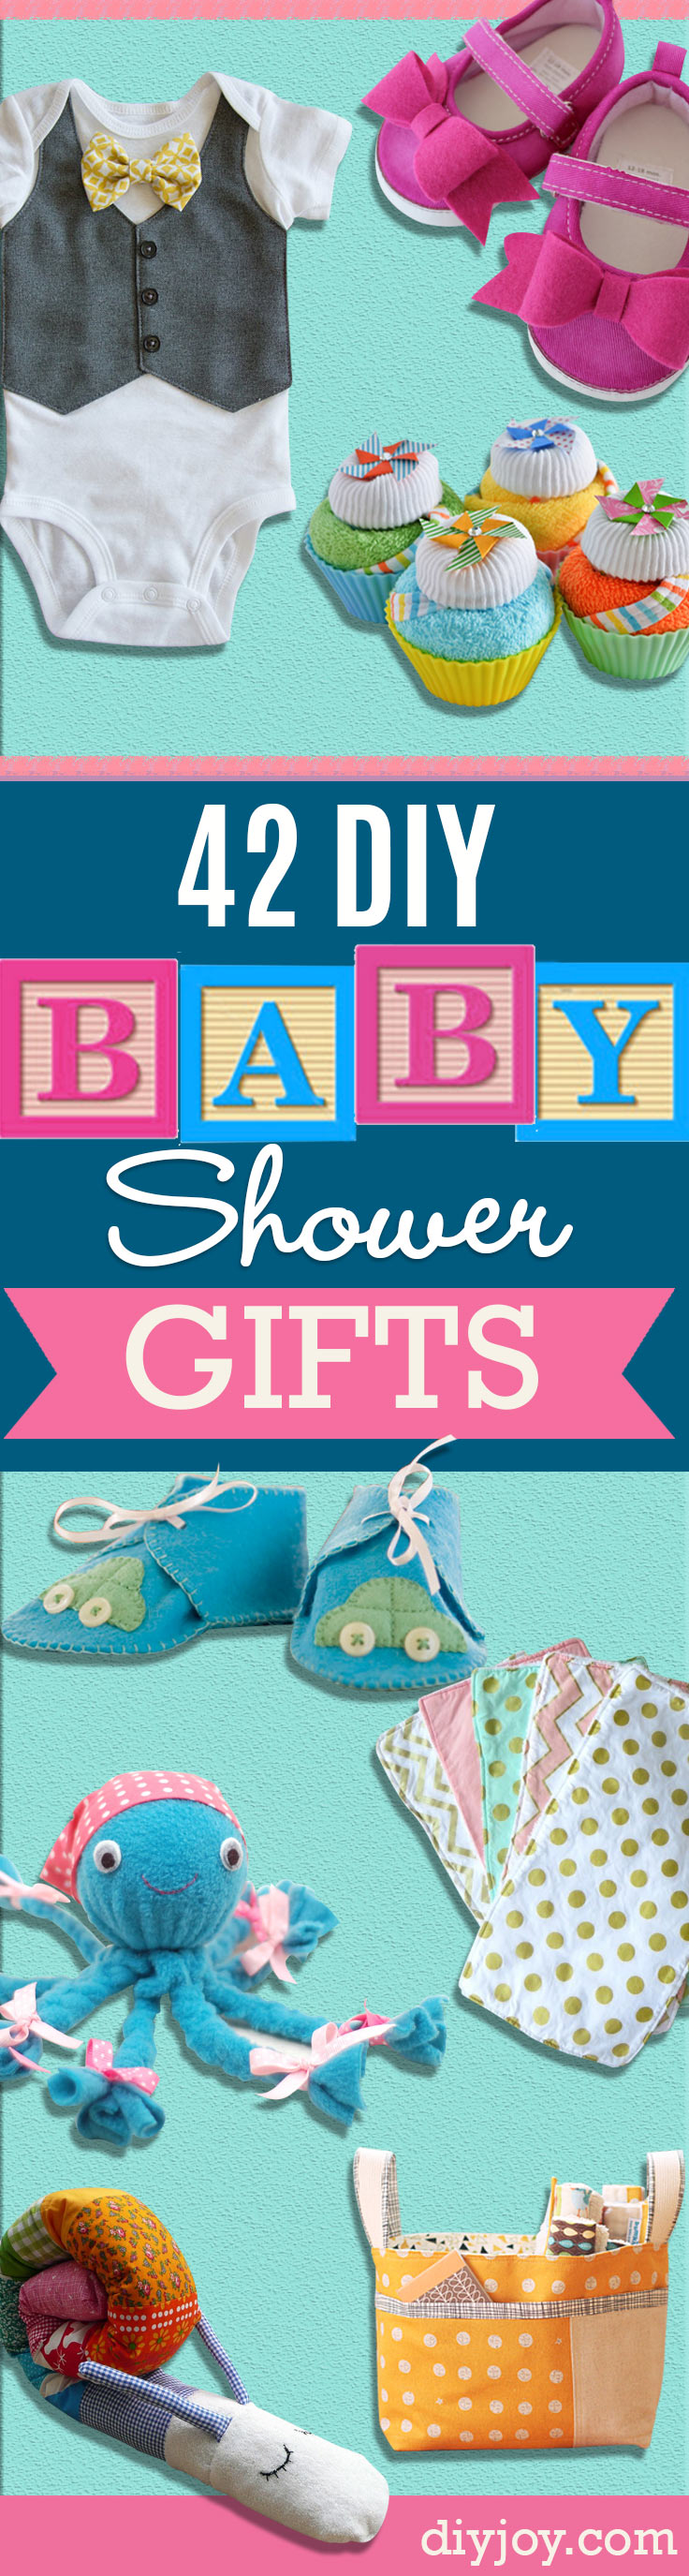 42 Fabulous DIY Baby Shower Gifts Page 2 of 8 DIY Joy